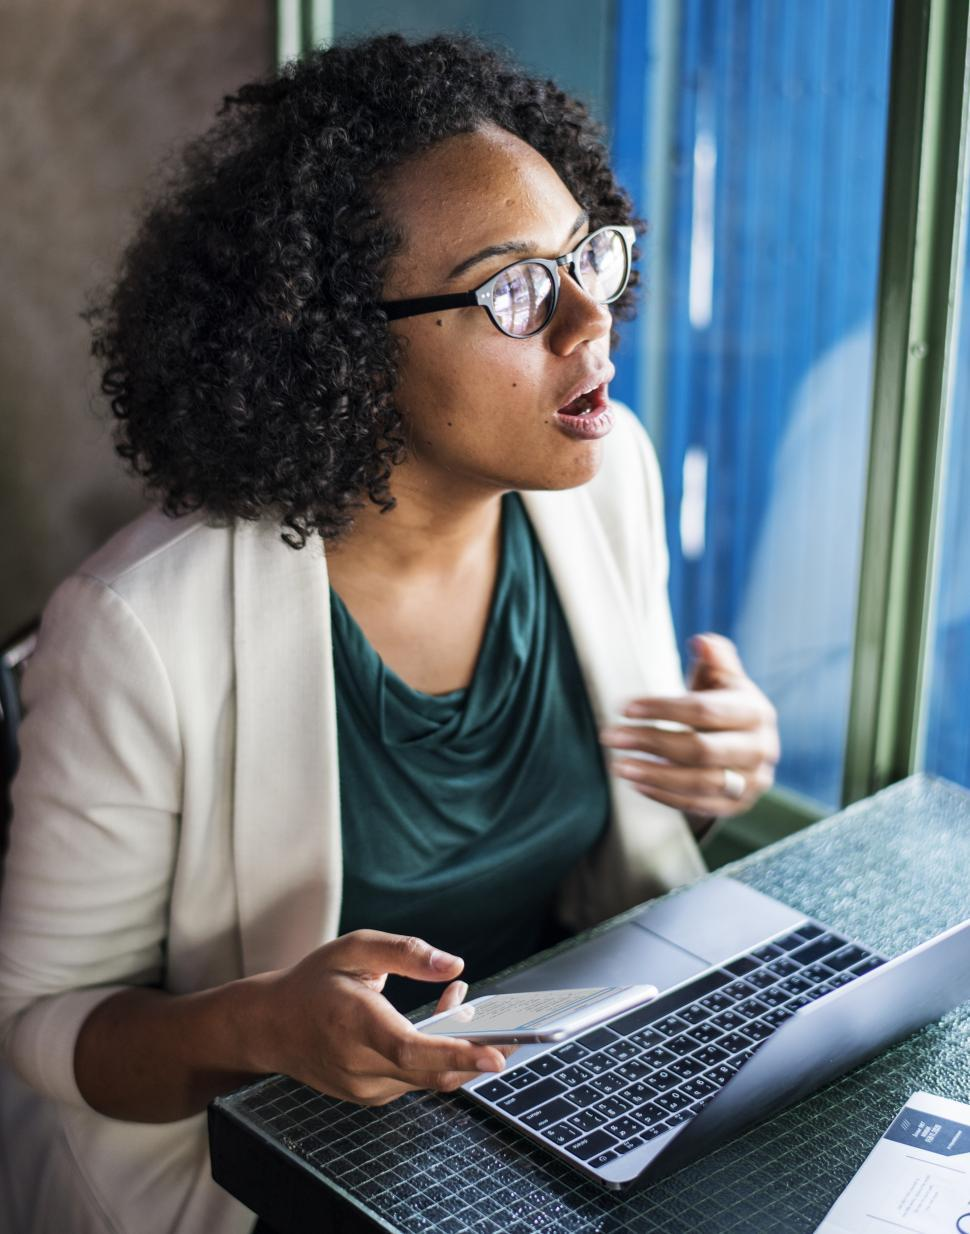 Download Free Stock Photo of A young woman talking and working on laptop